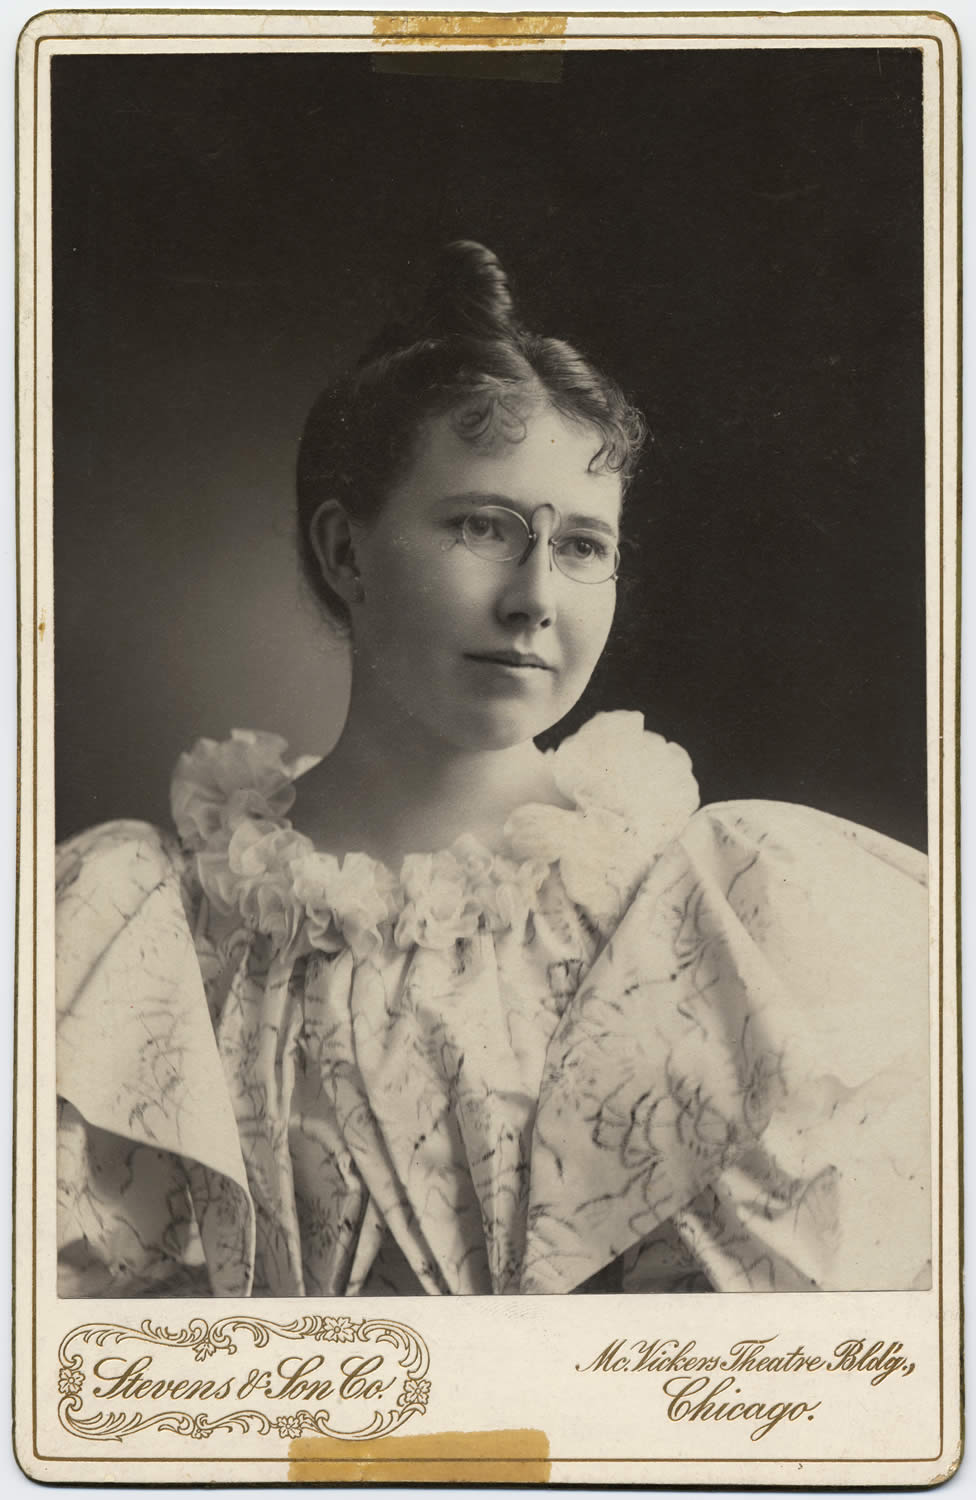 Portrait of Harriet Eddy who helped in the early organization of the county library system, c. 1890s